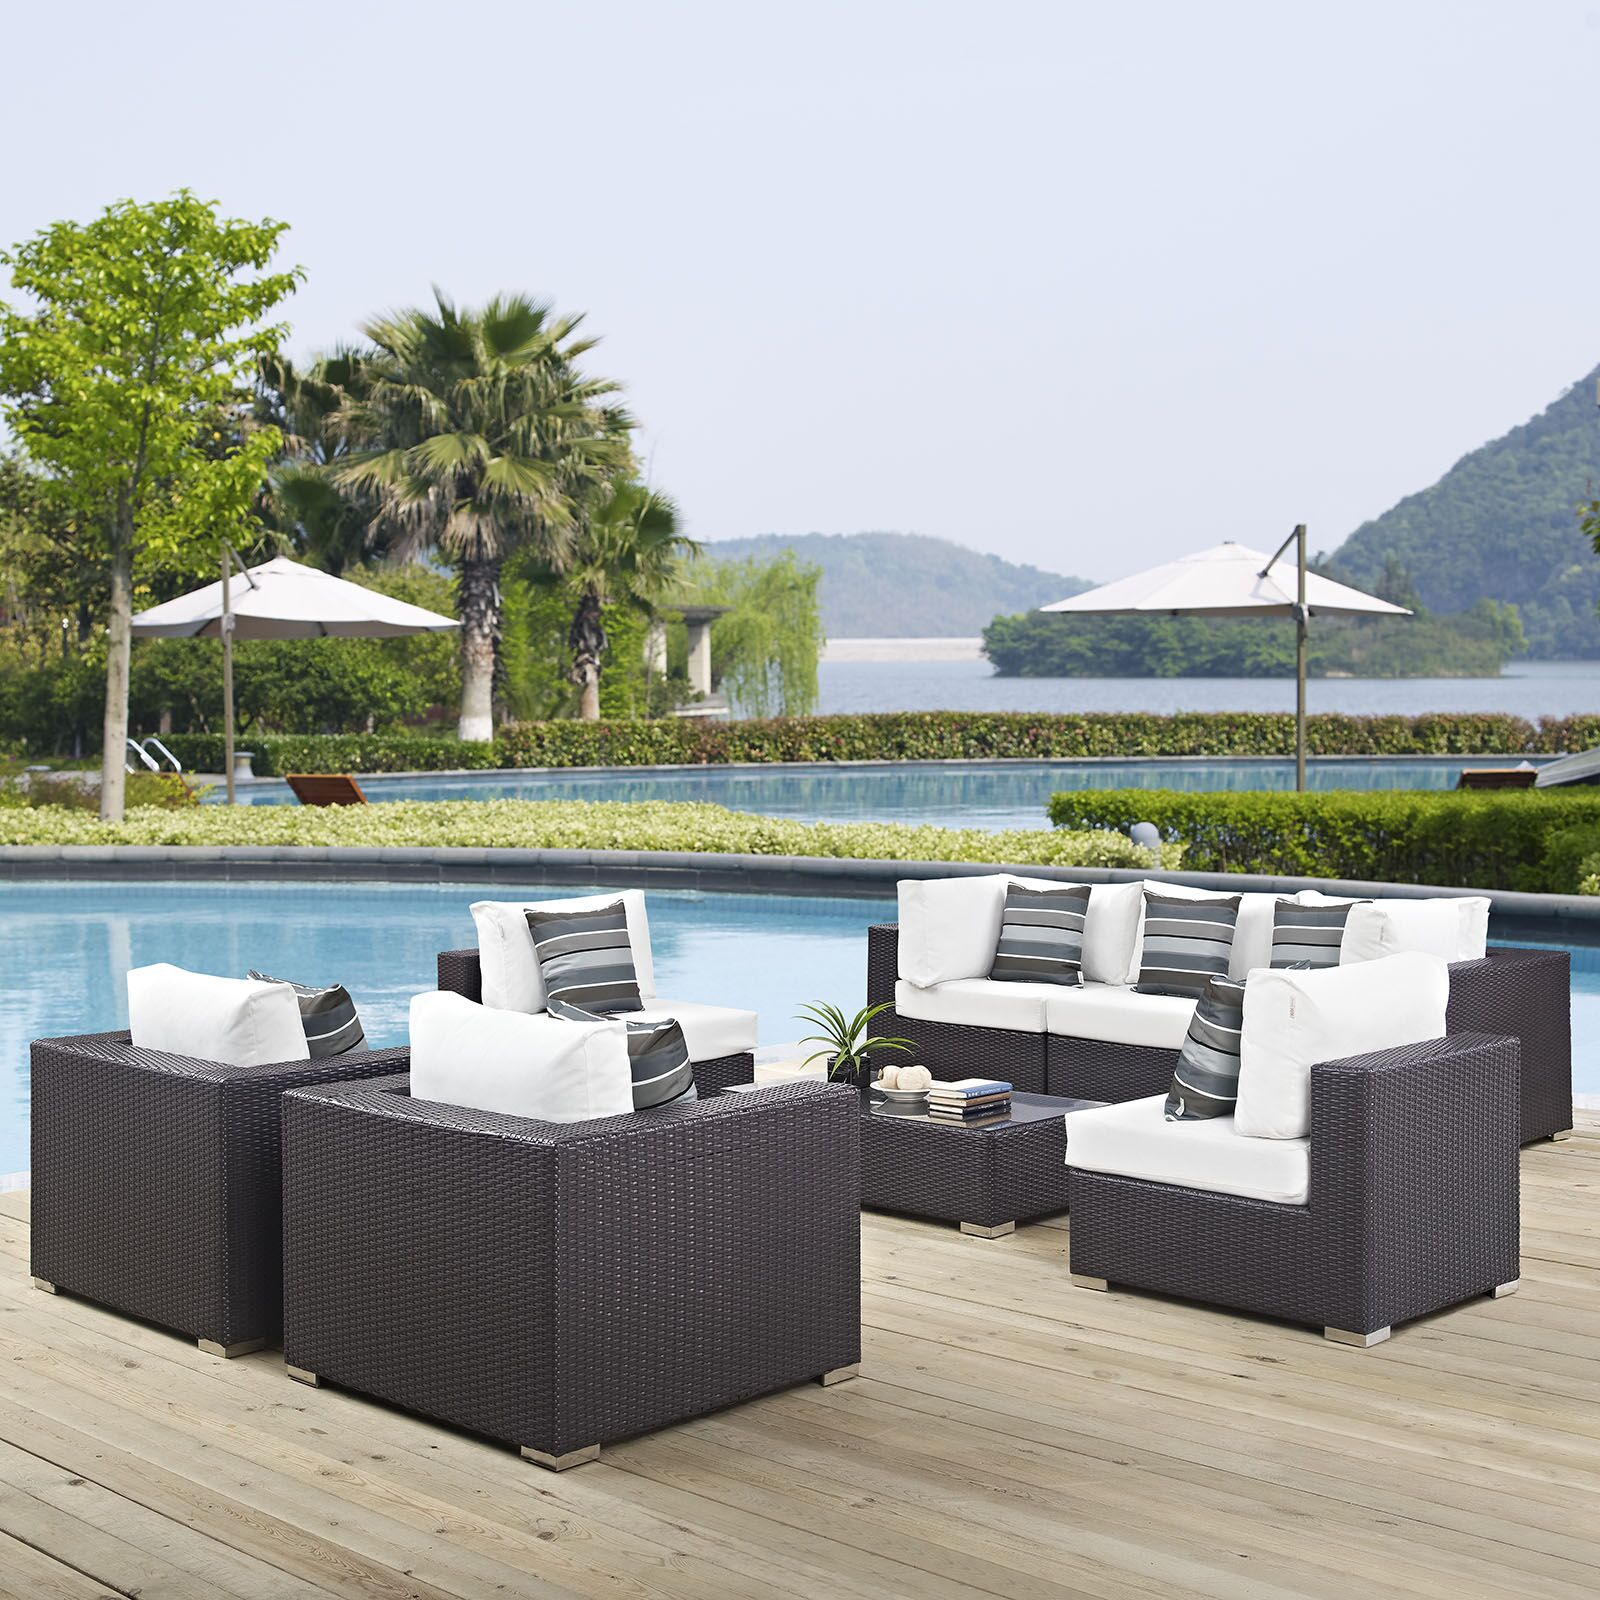 Ryele 8 Piece Rattan Sectional Set with Cushions Fabric: White